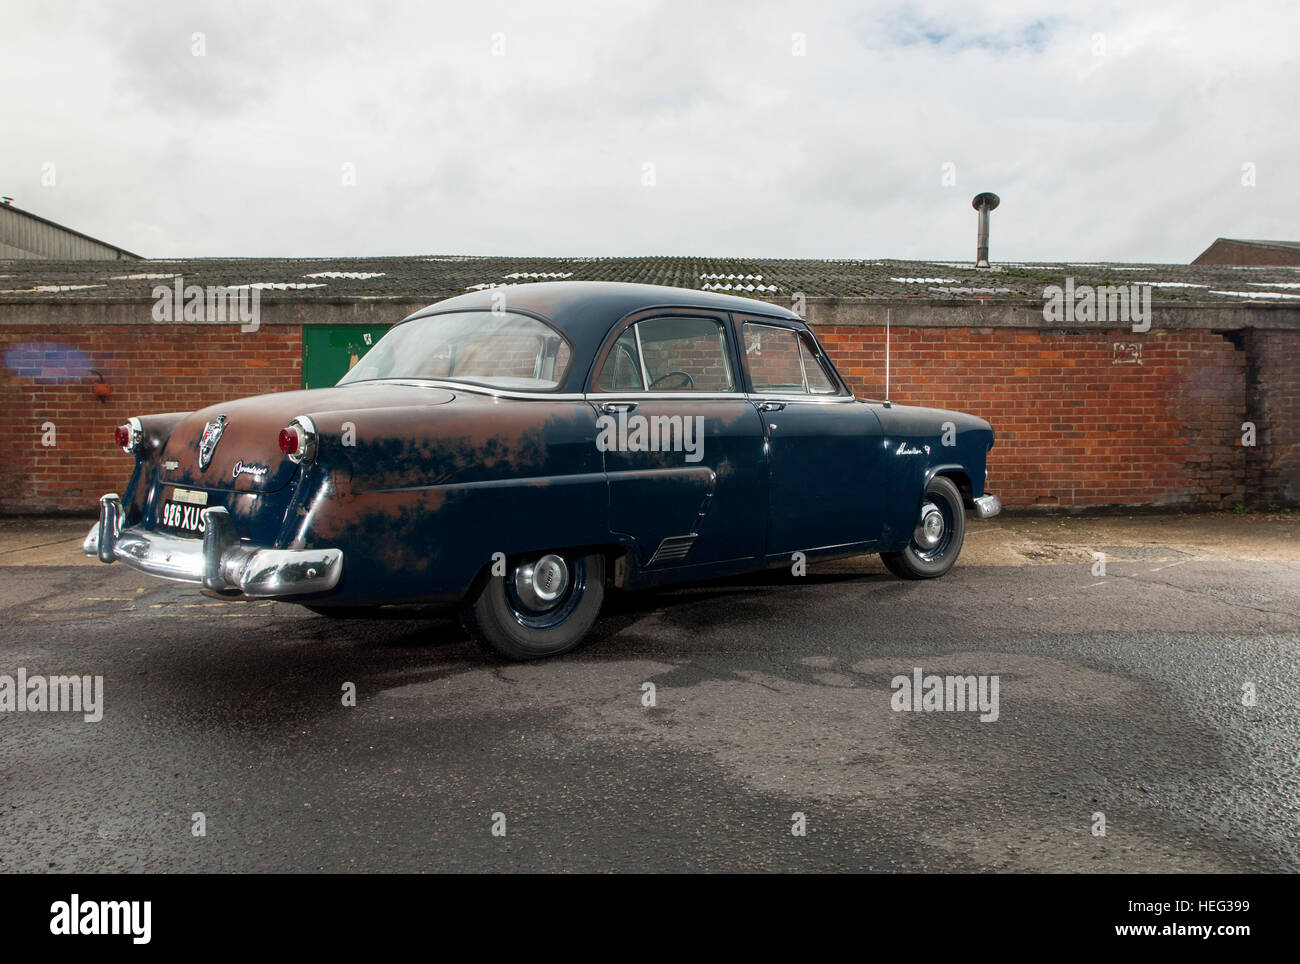 Rat Ford Stock Photos & Rat Ford Stock Images - Alamy